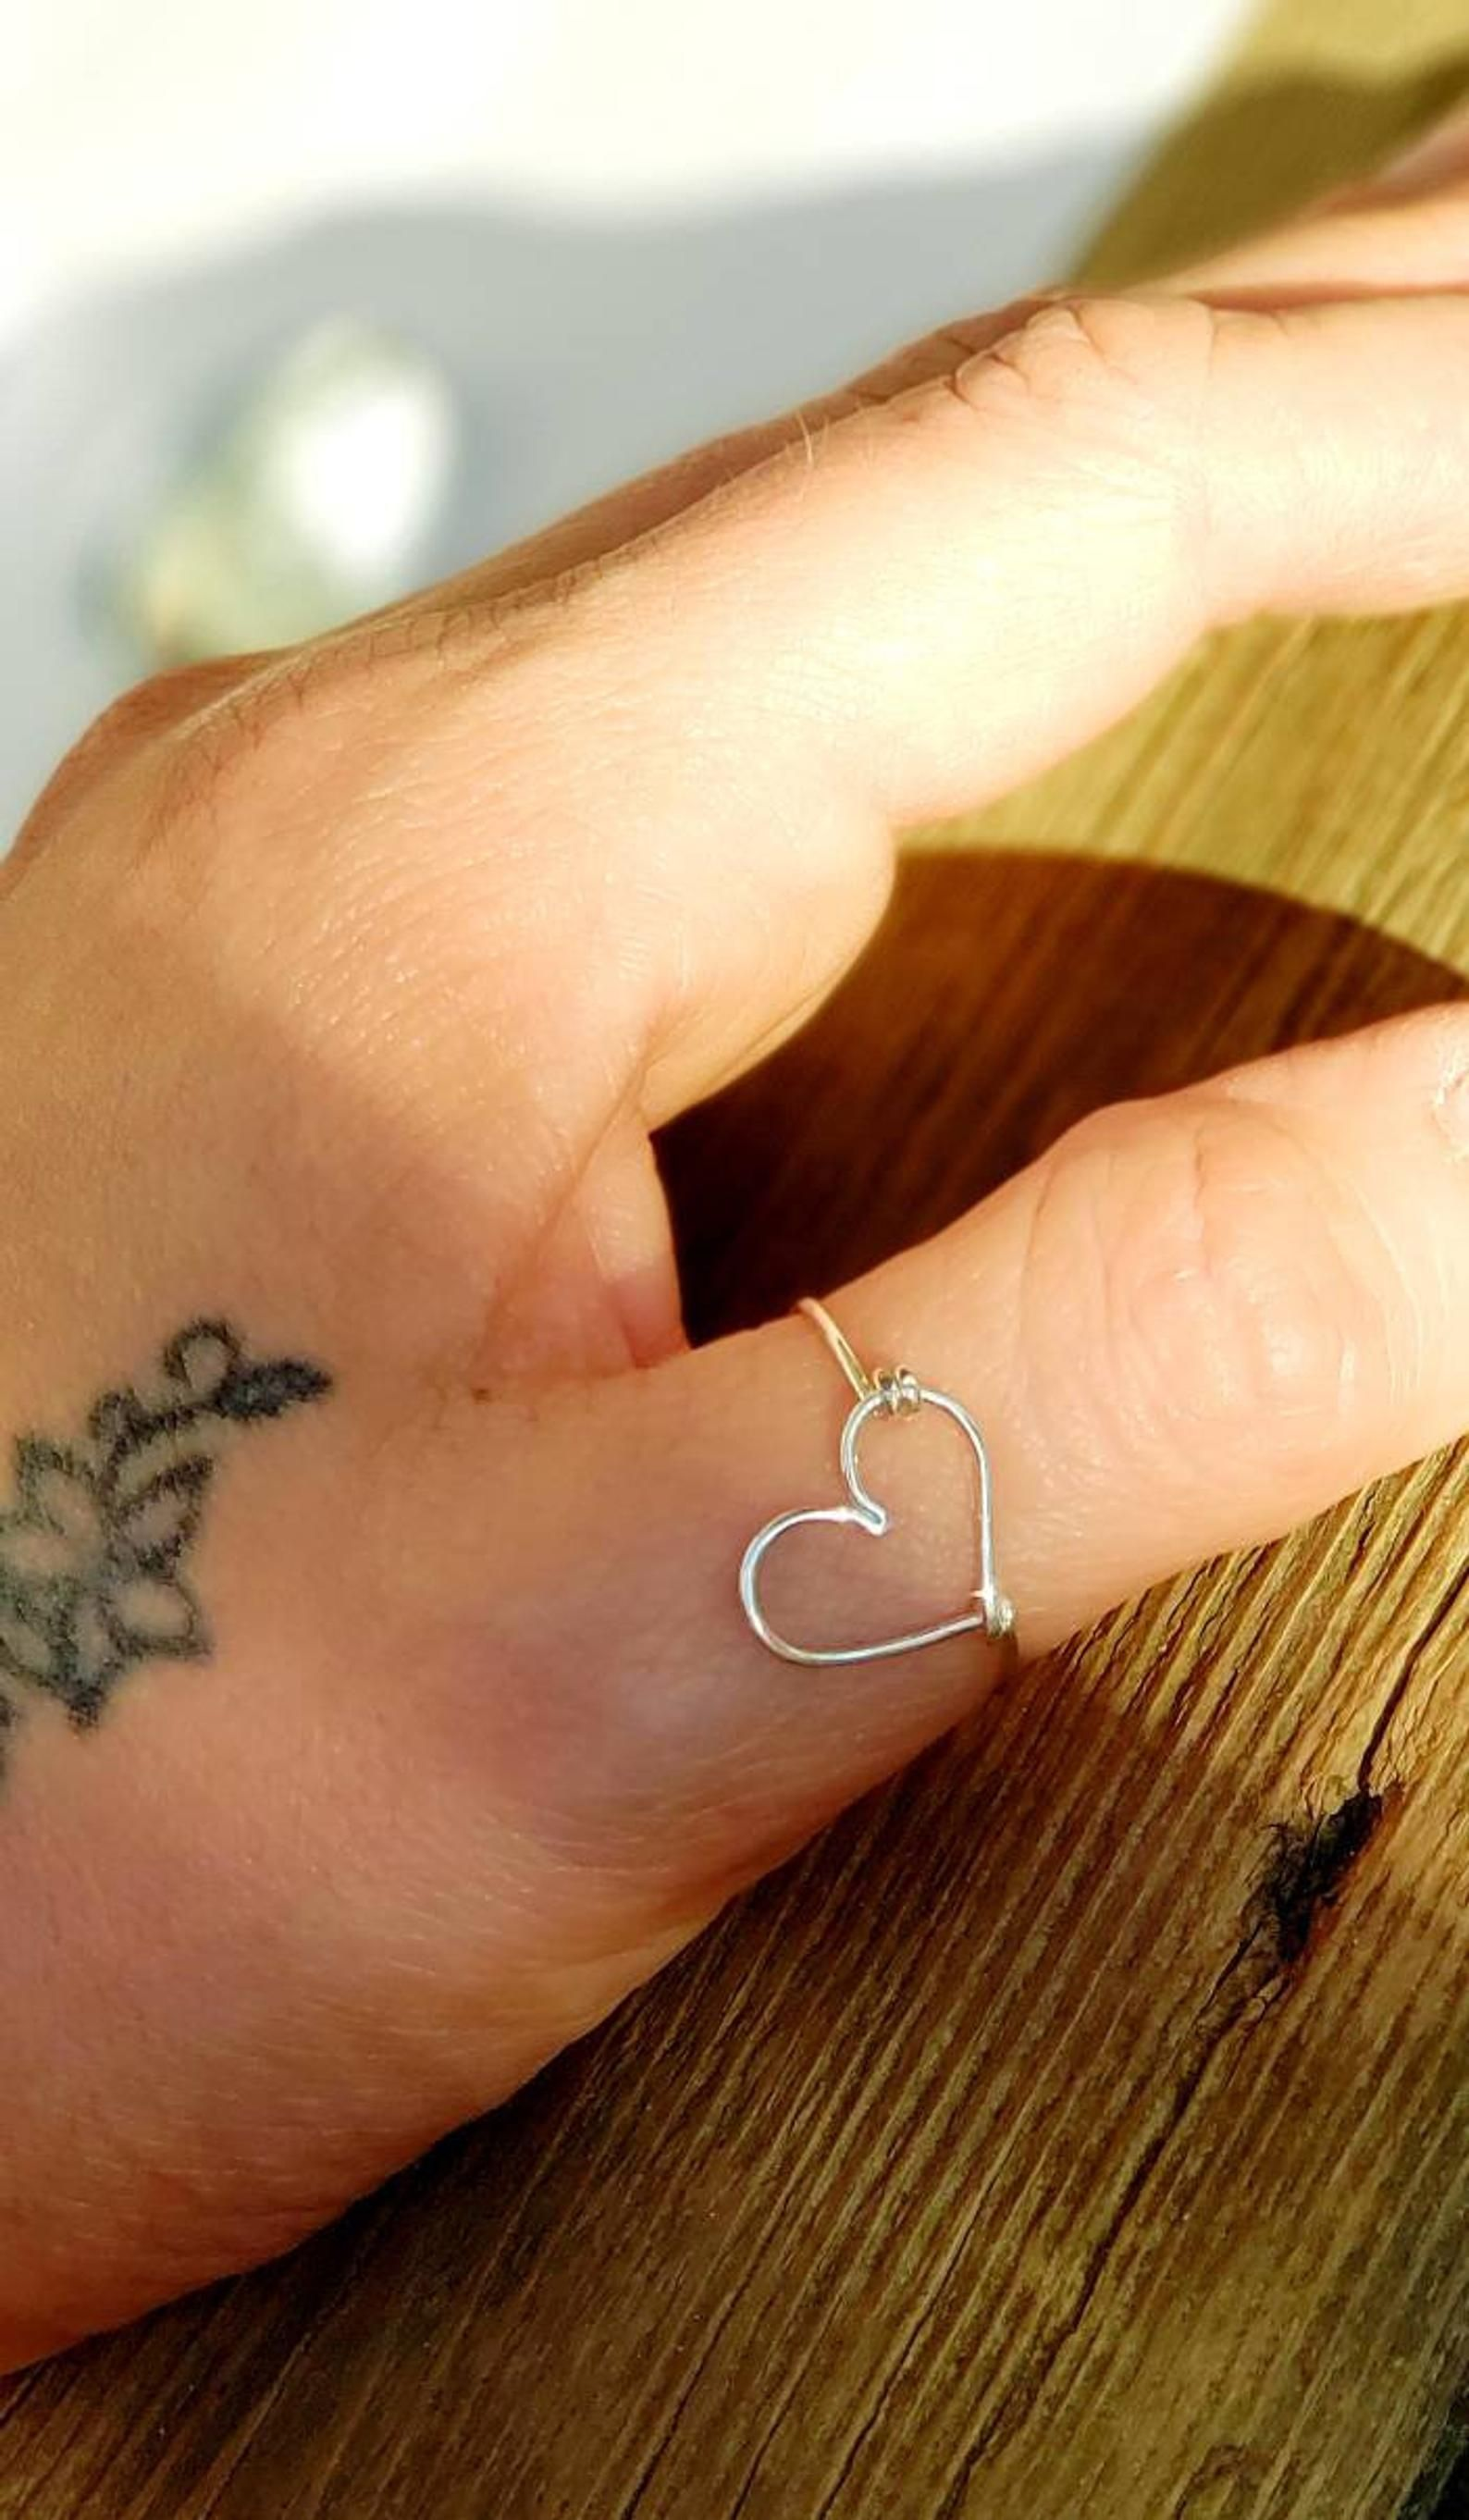 Open Heart Thumb Rings For Women Sterling Silver Jewellery  Etsy